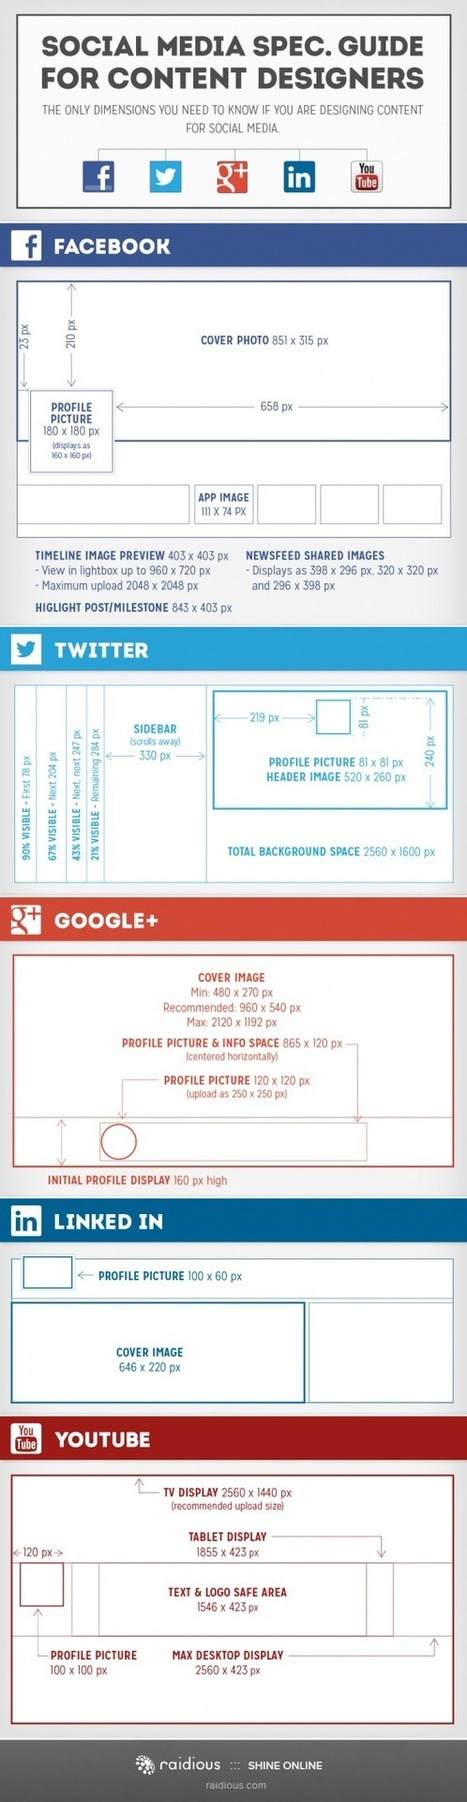 A guide for social media image sizes - The Social Media Life | Online Visibility | Scoop.it